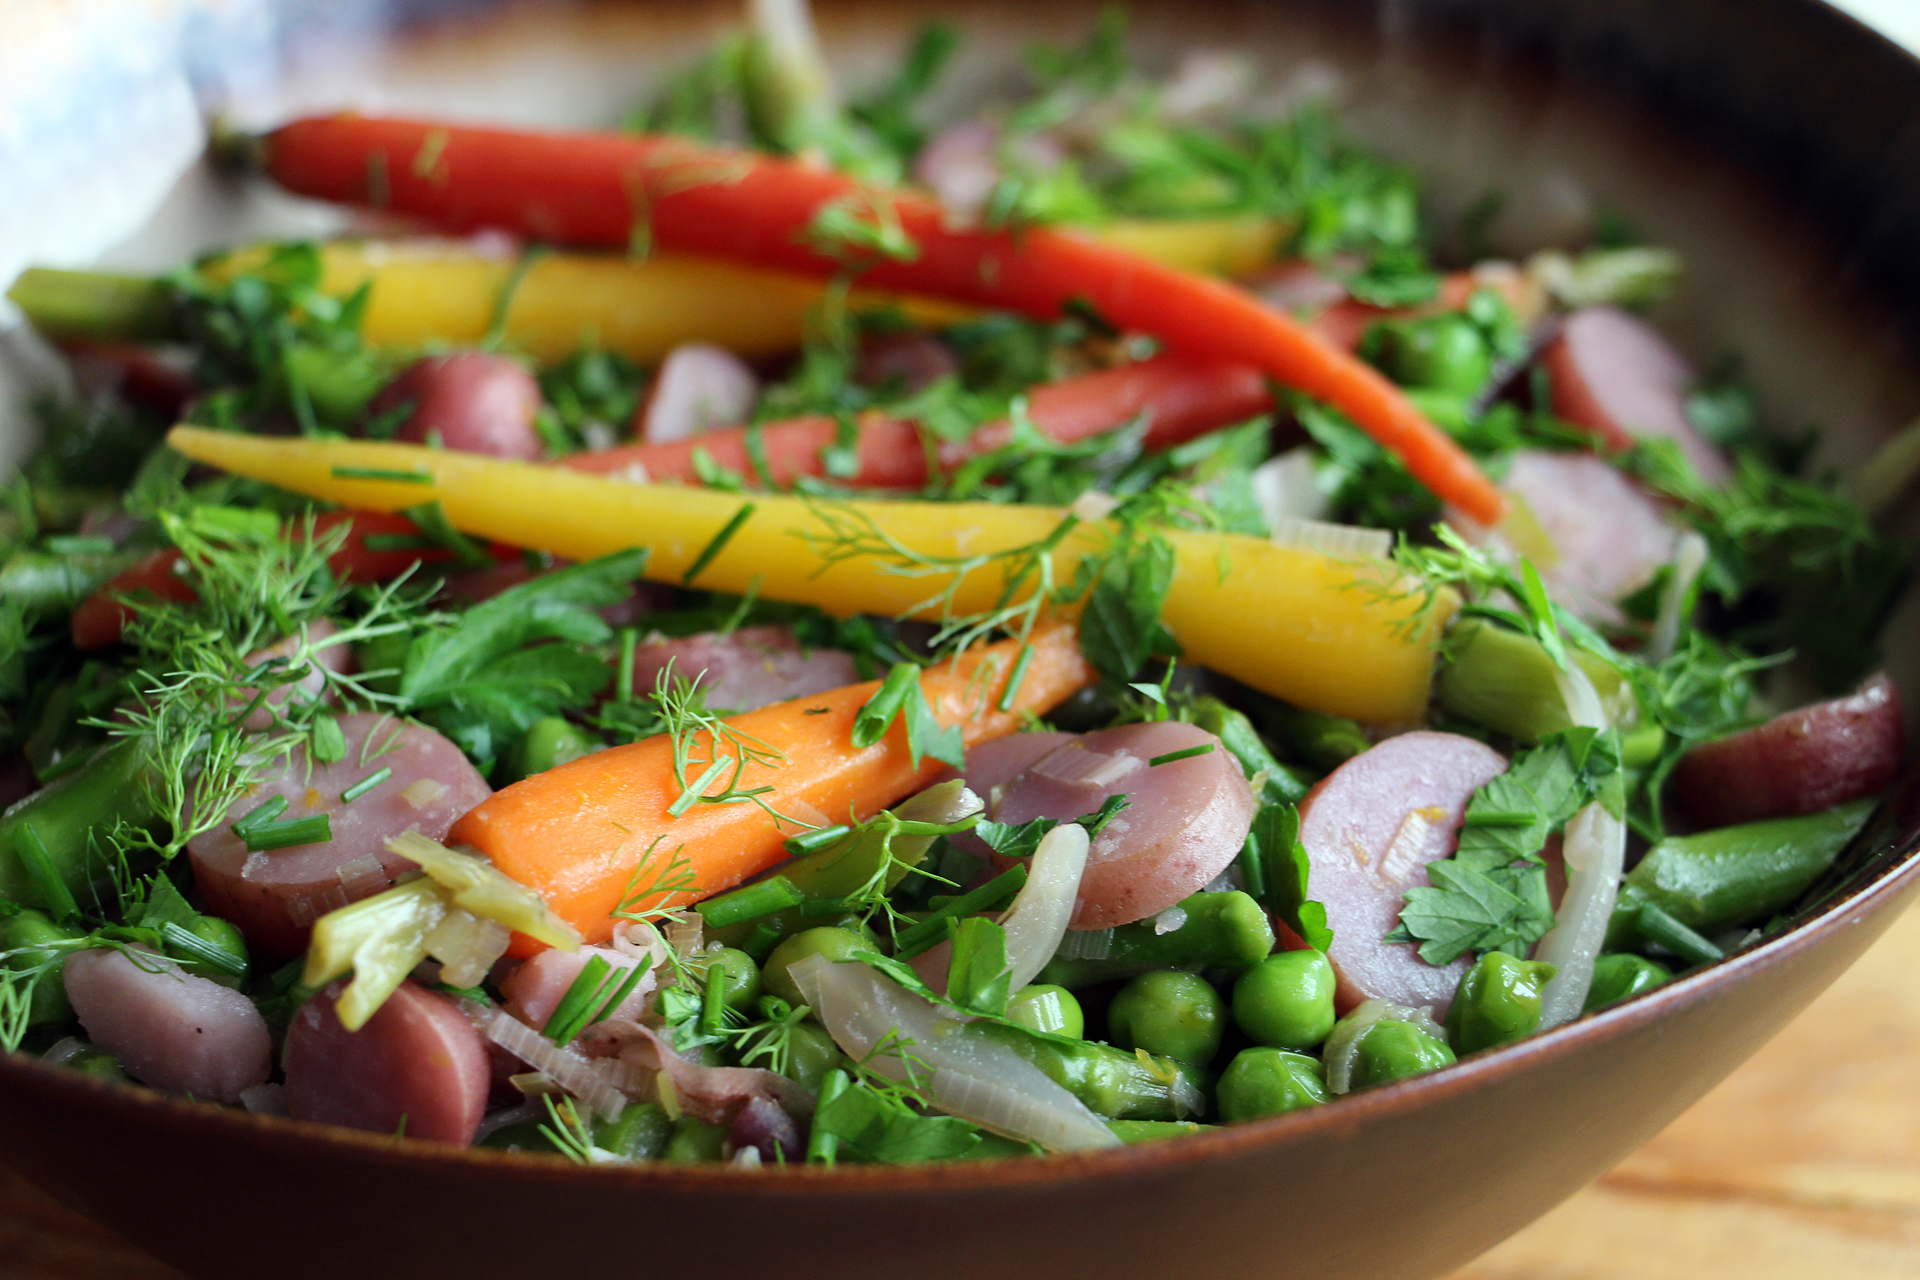 Springtime Vegetable Ragout with Asparagus, New Potatoes, Baby Carrots, Fennel, Fresh Peas, and Herbs